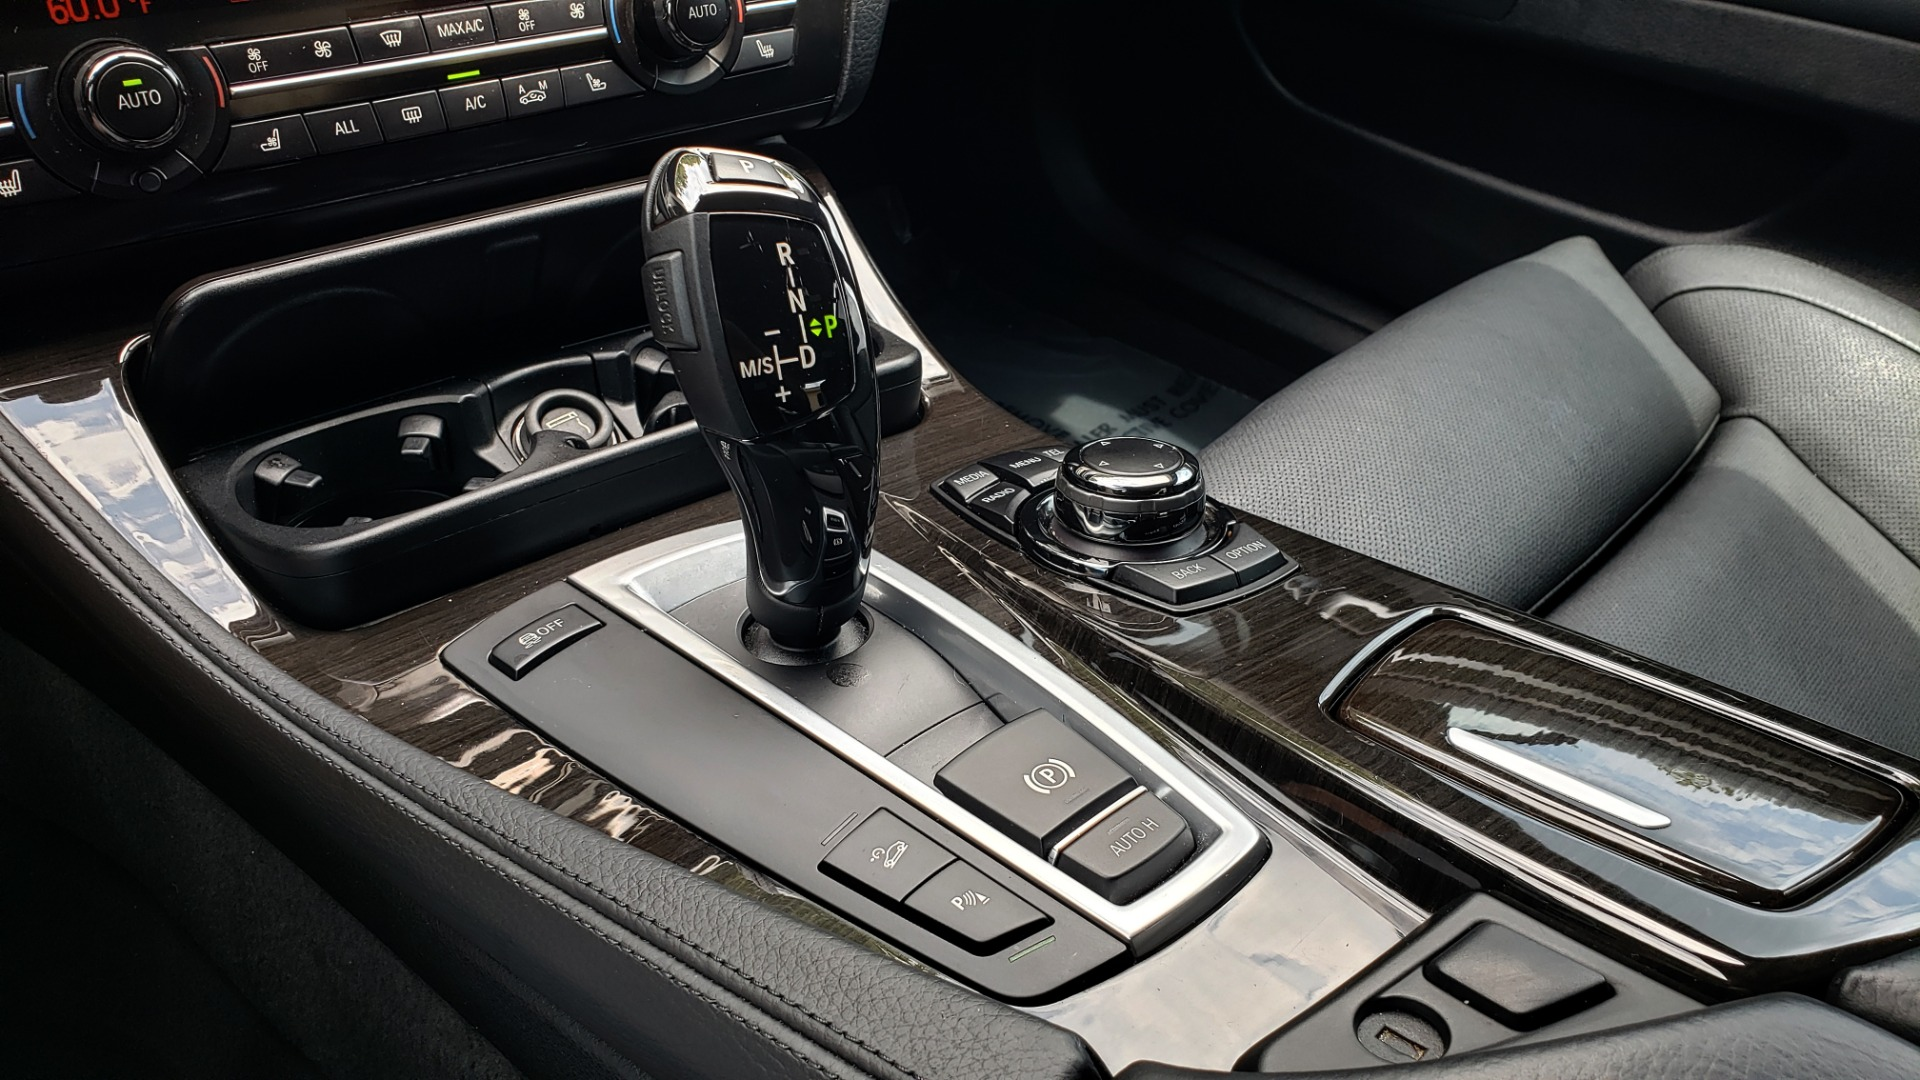 Used 2013 BMW 5 SERIES 550I XDRIVE LUX PKG / EXEC / COLD WTHR / NAV / SUNROOF / REARVIEW for sale Sold at Formula Imports in Charlotte NC 28227 43